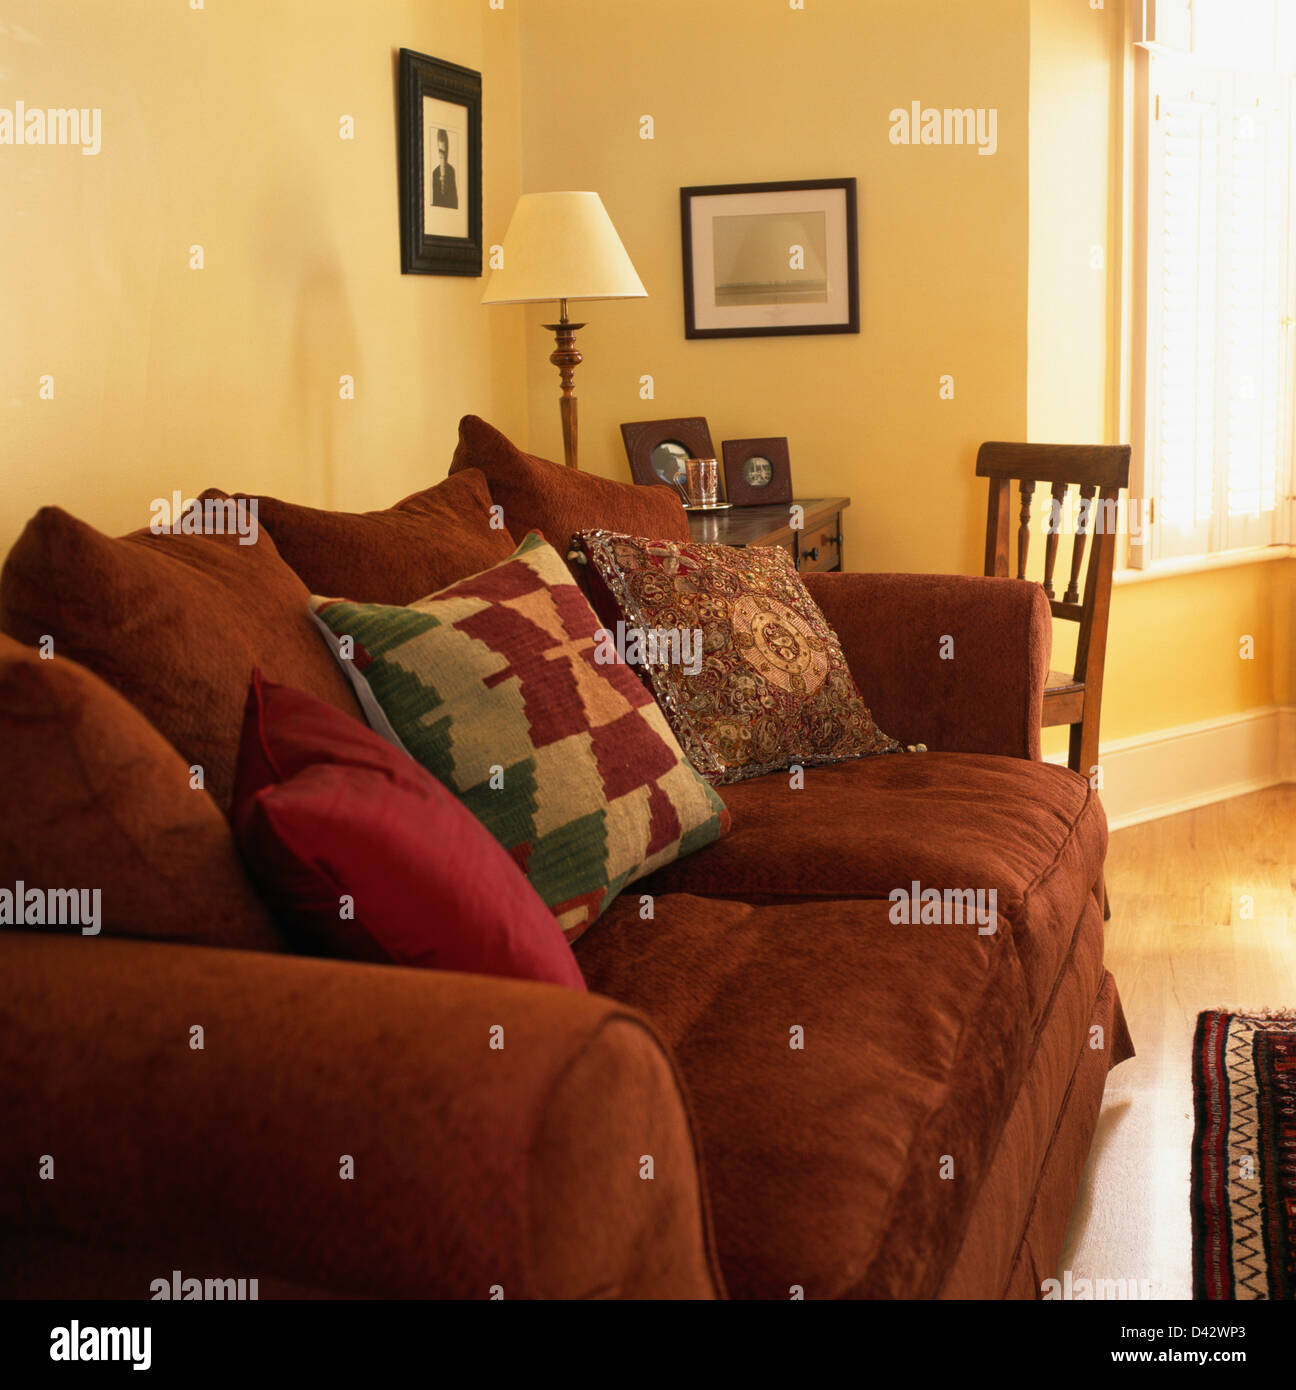 R Patterned Cushions On Rust Colored Sofa In Traditional Living Room